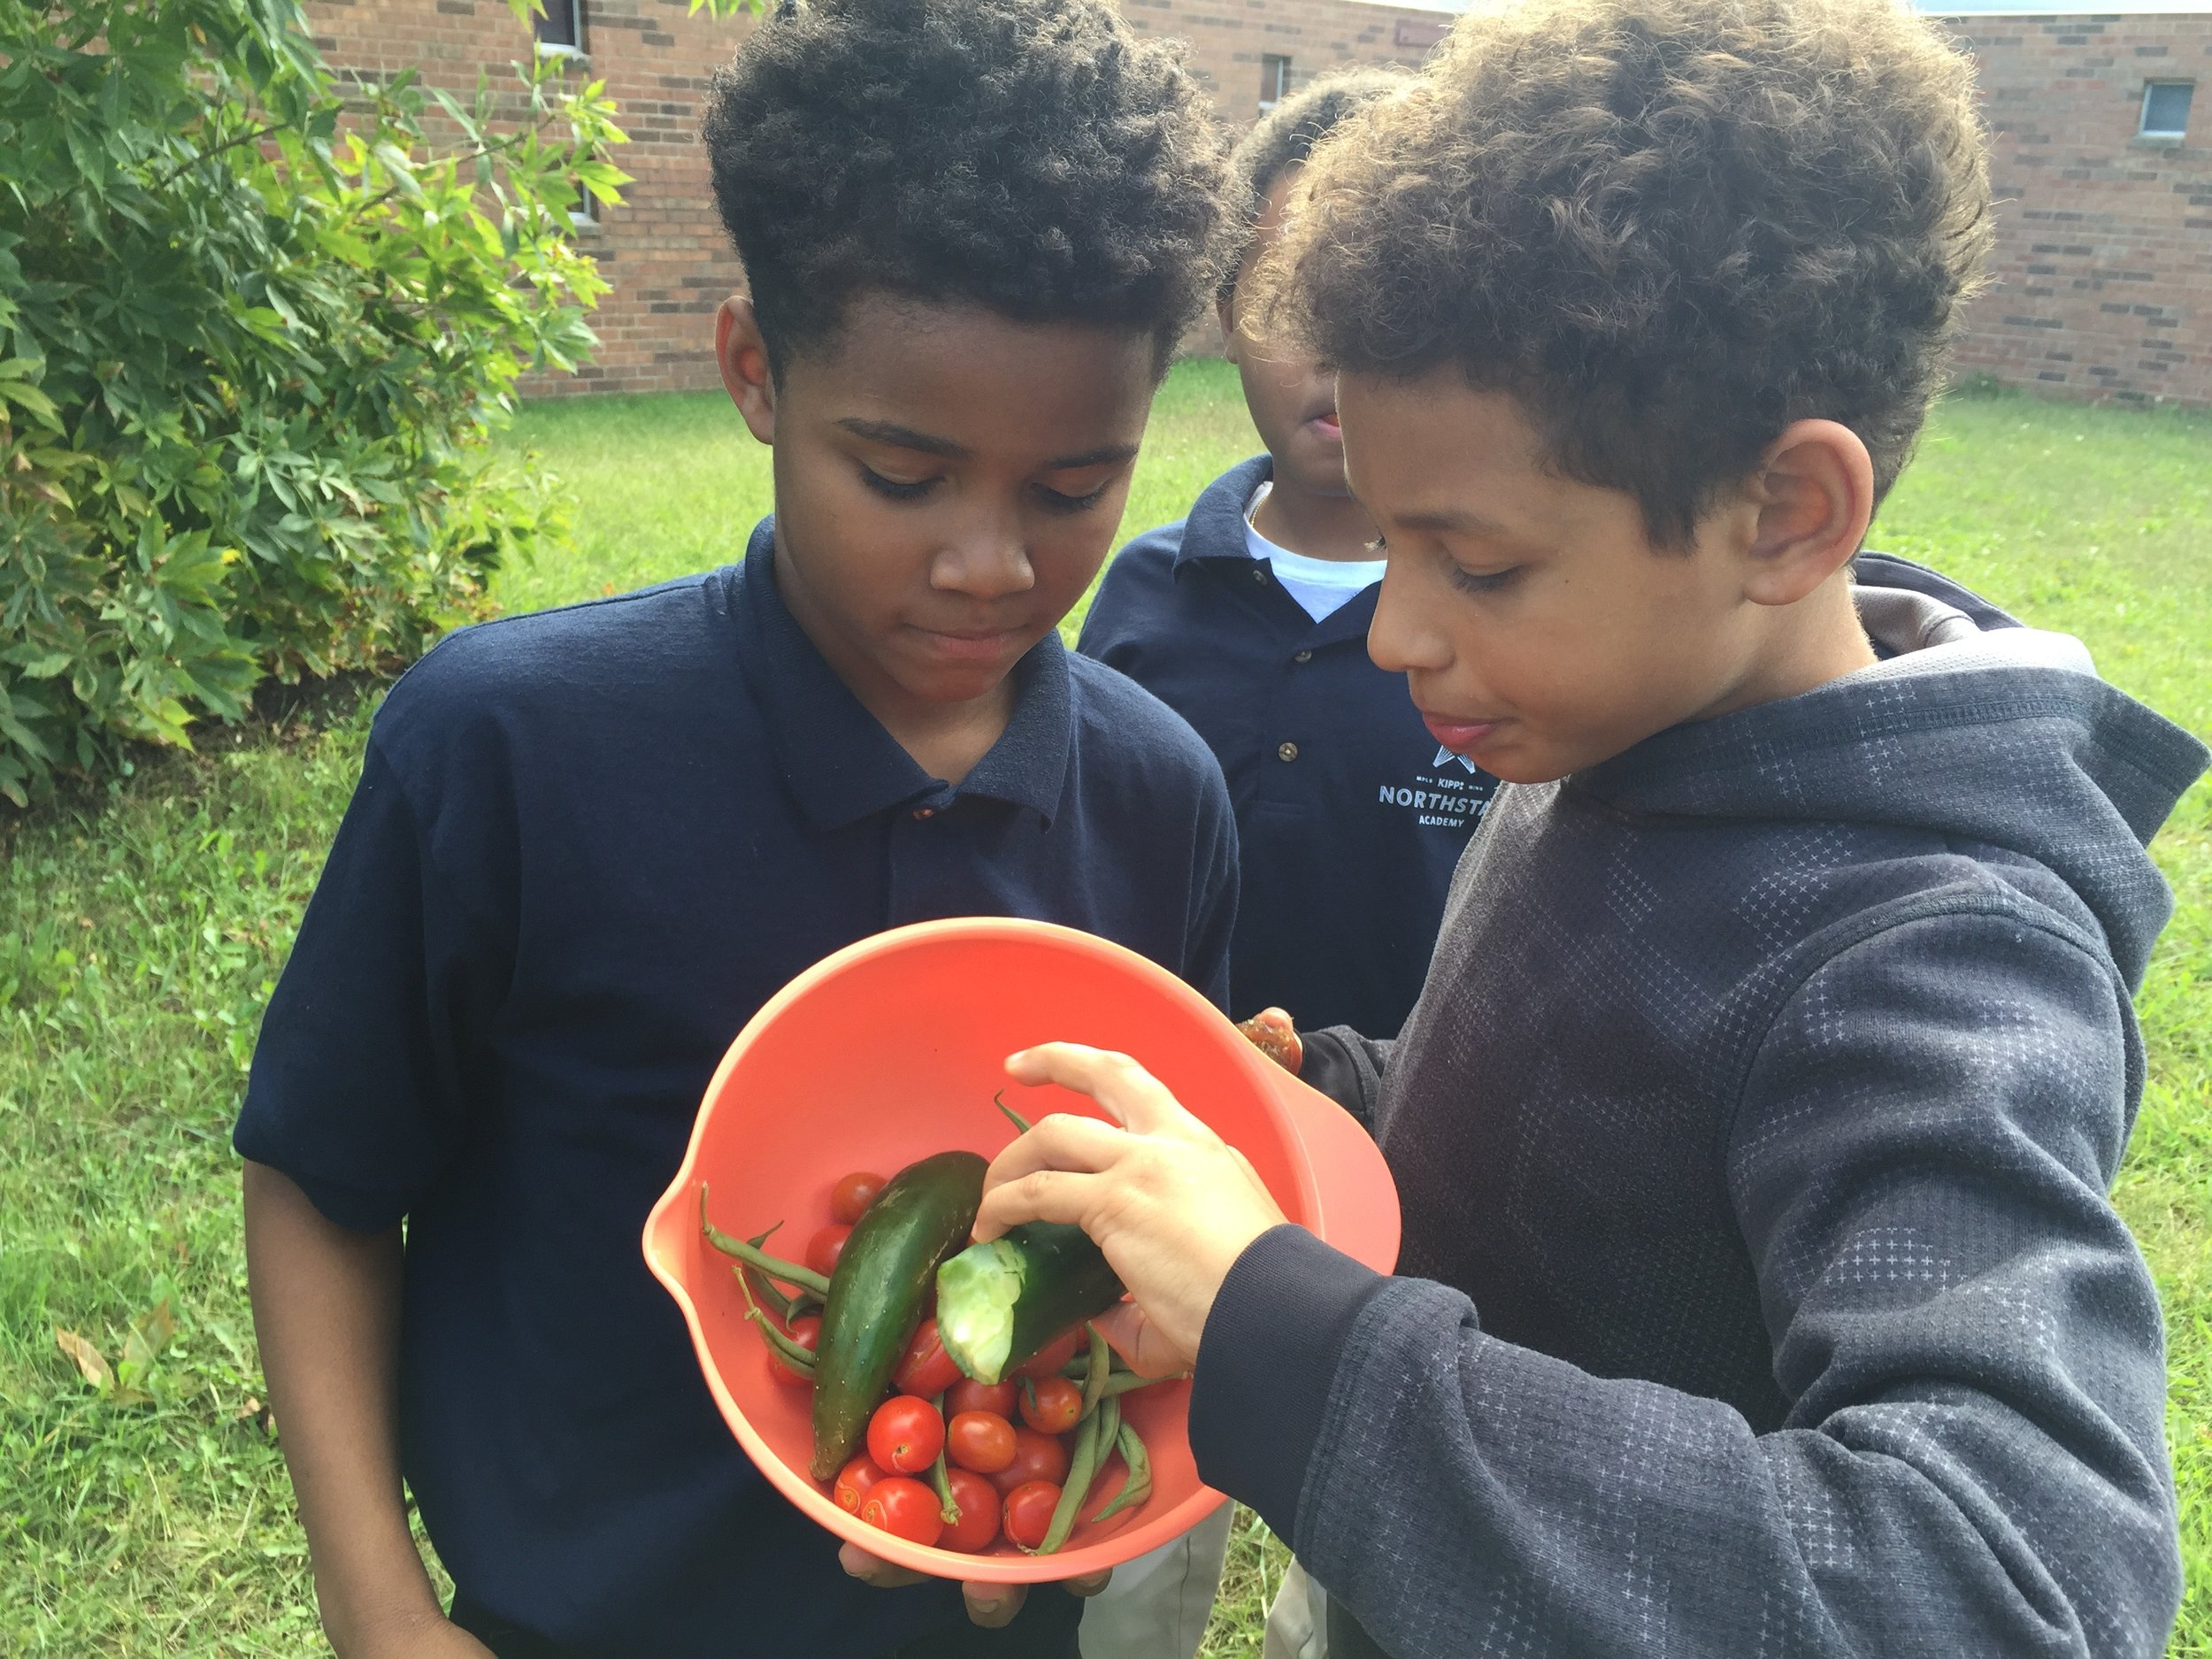 Stephen and a classmate   sampled a cucumber before loading garden produce in the bags to bring home to their families.